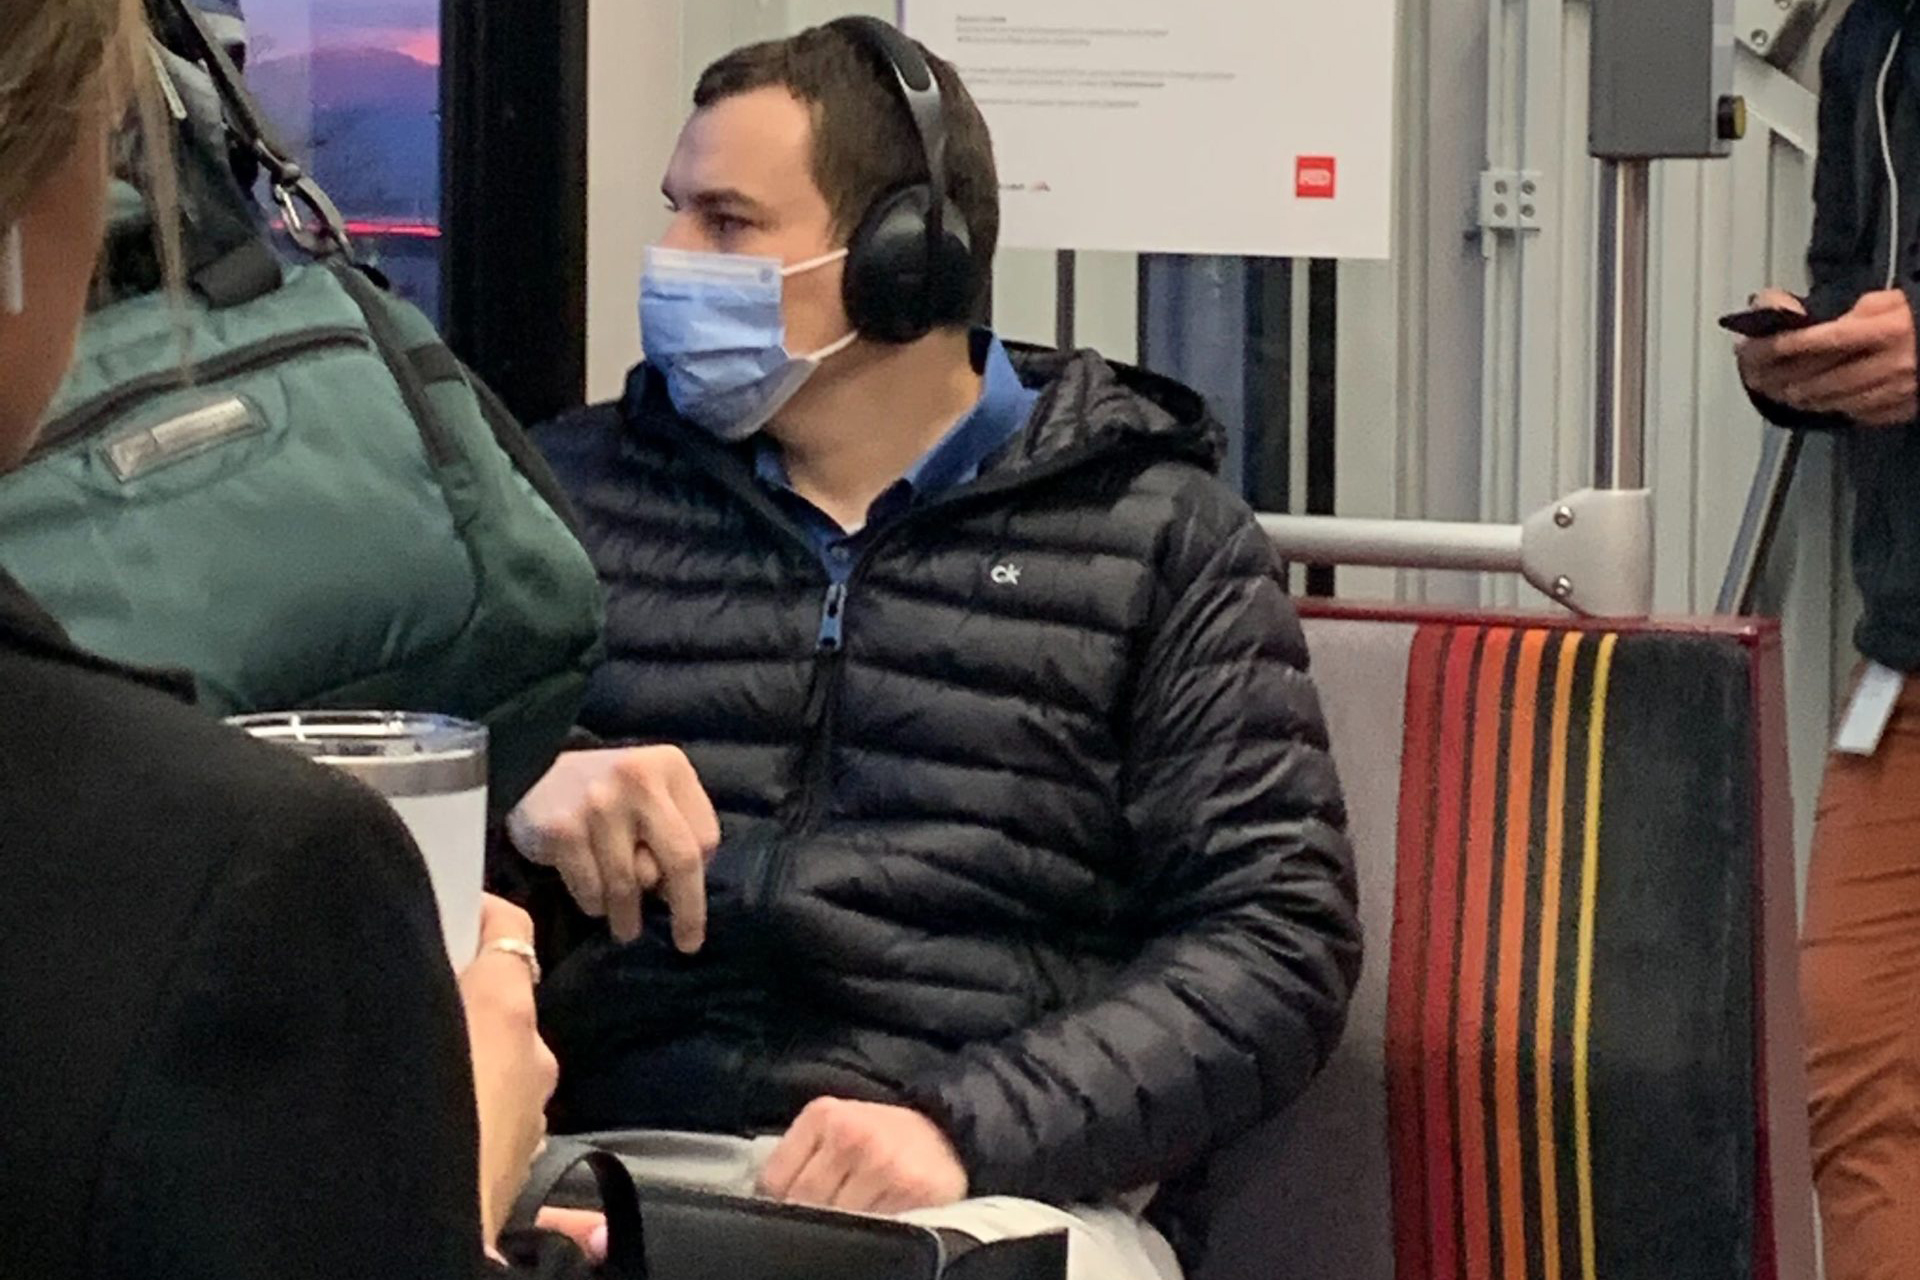 A man wears a health mask while riding RTD's light rail on January 27, 2020. Masks are one way experts say can help stop the spread of viruses.